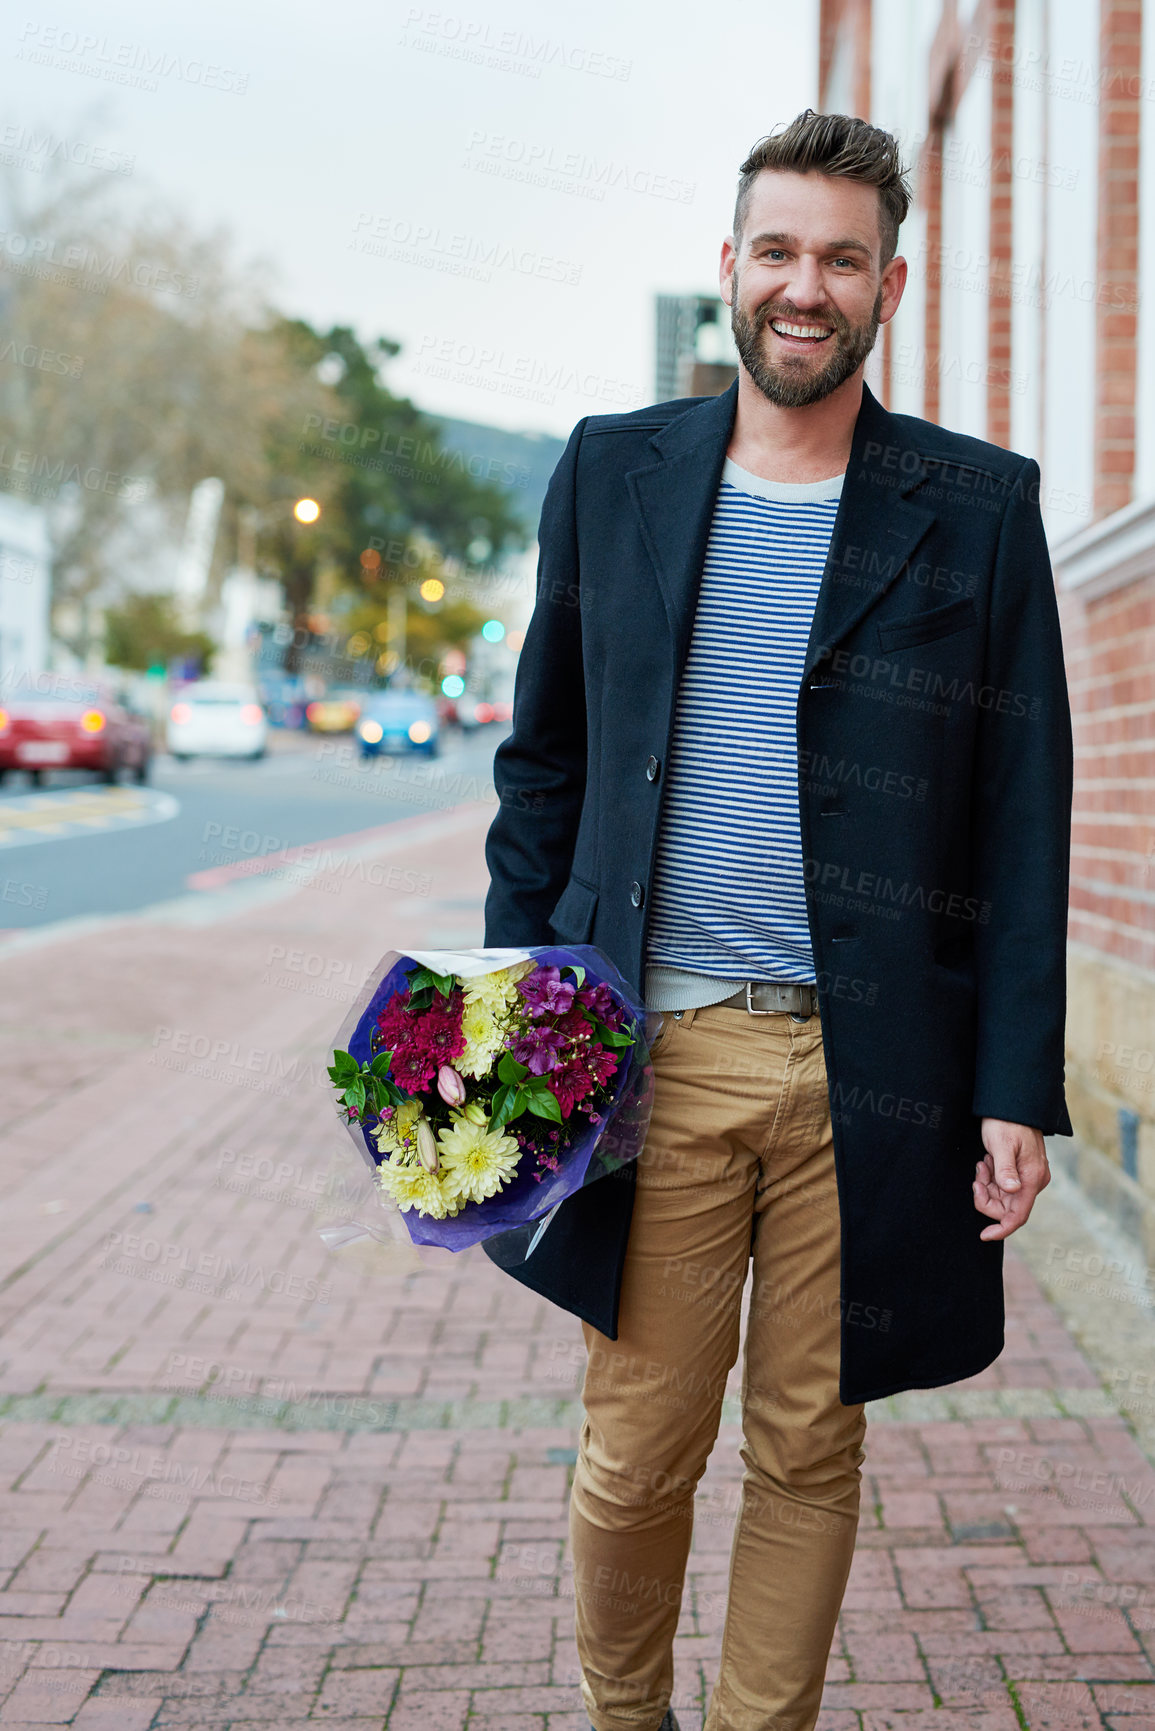 Buy stock photo Portrait of a handsome young man walking through the city with a bunch of flowers in hand